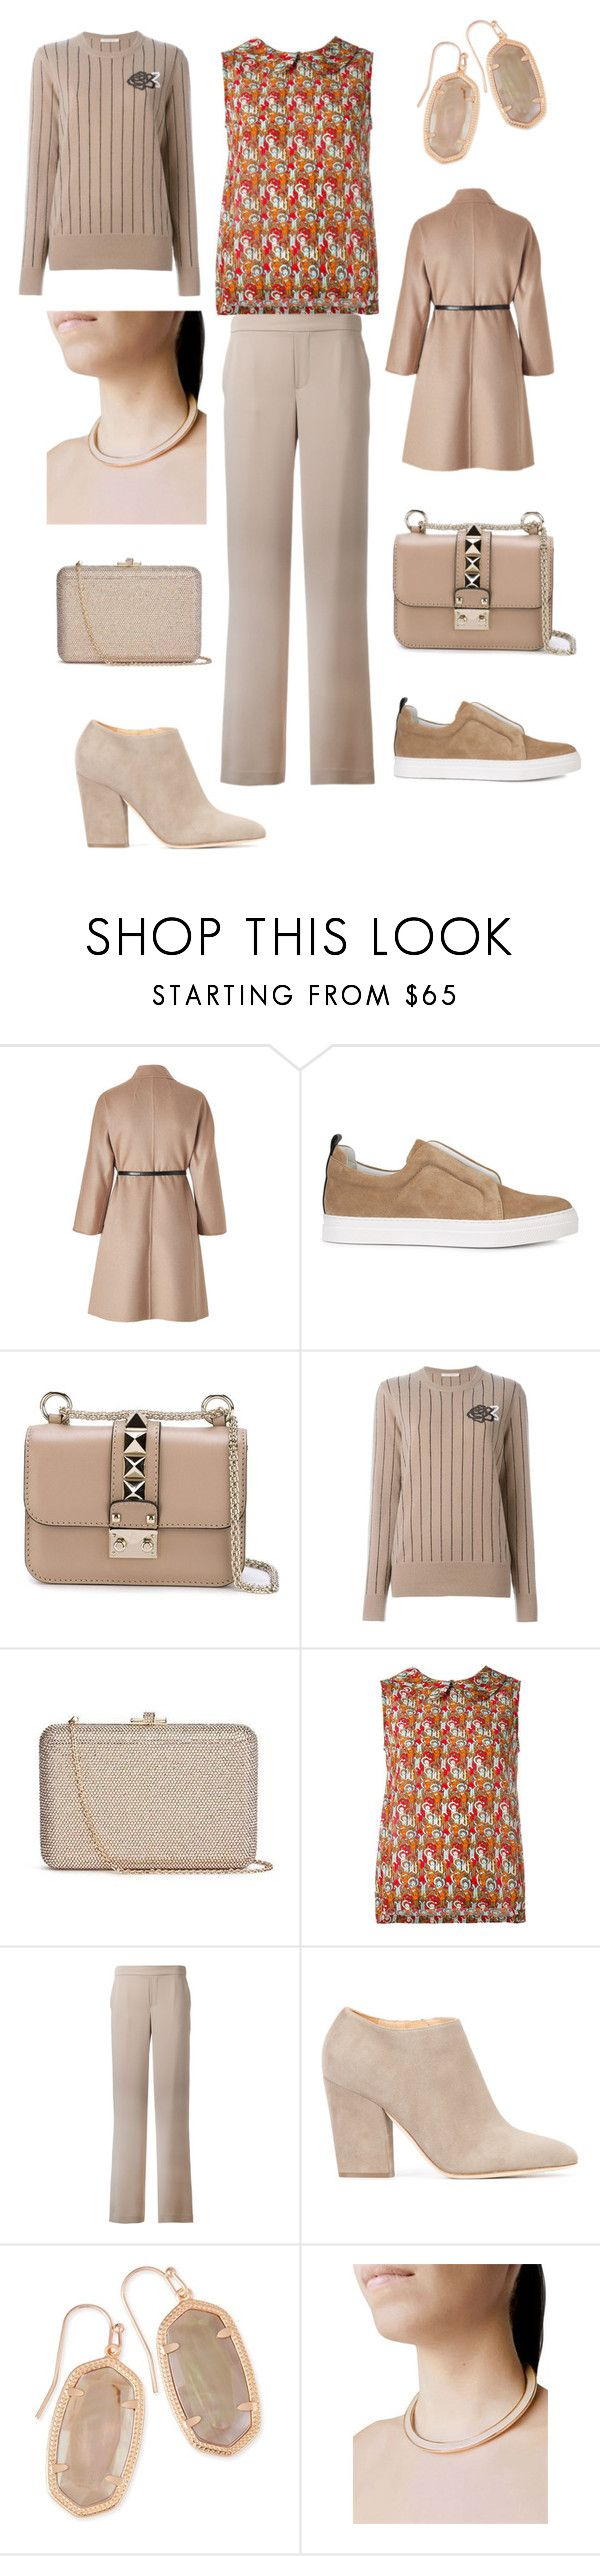 """""""people we love"""" by emmamegan-5678 ❤ liked on Polyvore featuring Fendi, Pierre Hardy, Valentino, Christopher Kane, Judith Leiber, P.A.R.O.S.H., Sergio Rossi, Kendra Scott, Sylvio Giardina and modern"""